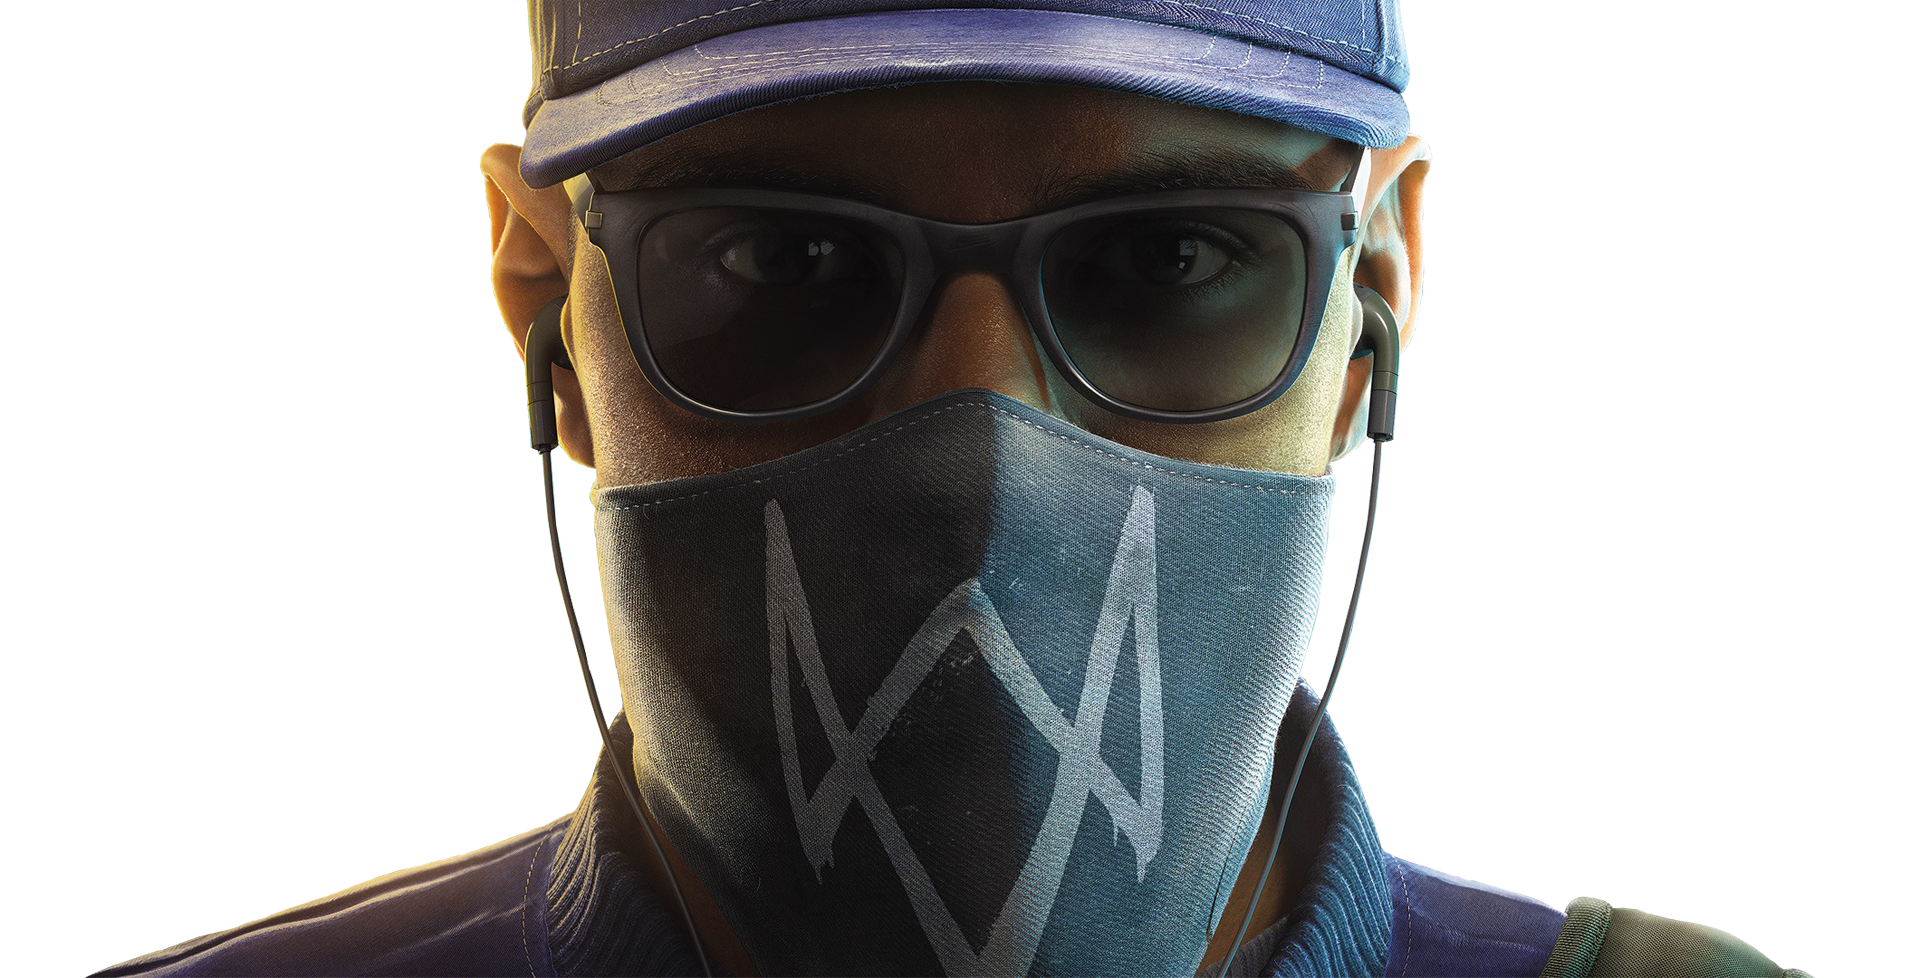 Watch Dogs 2 Wrench Fanart: Watch Dogs 2 Marcus Holloway Render 4 By Digital-Zky On